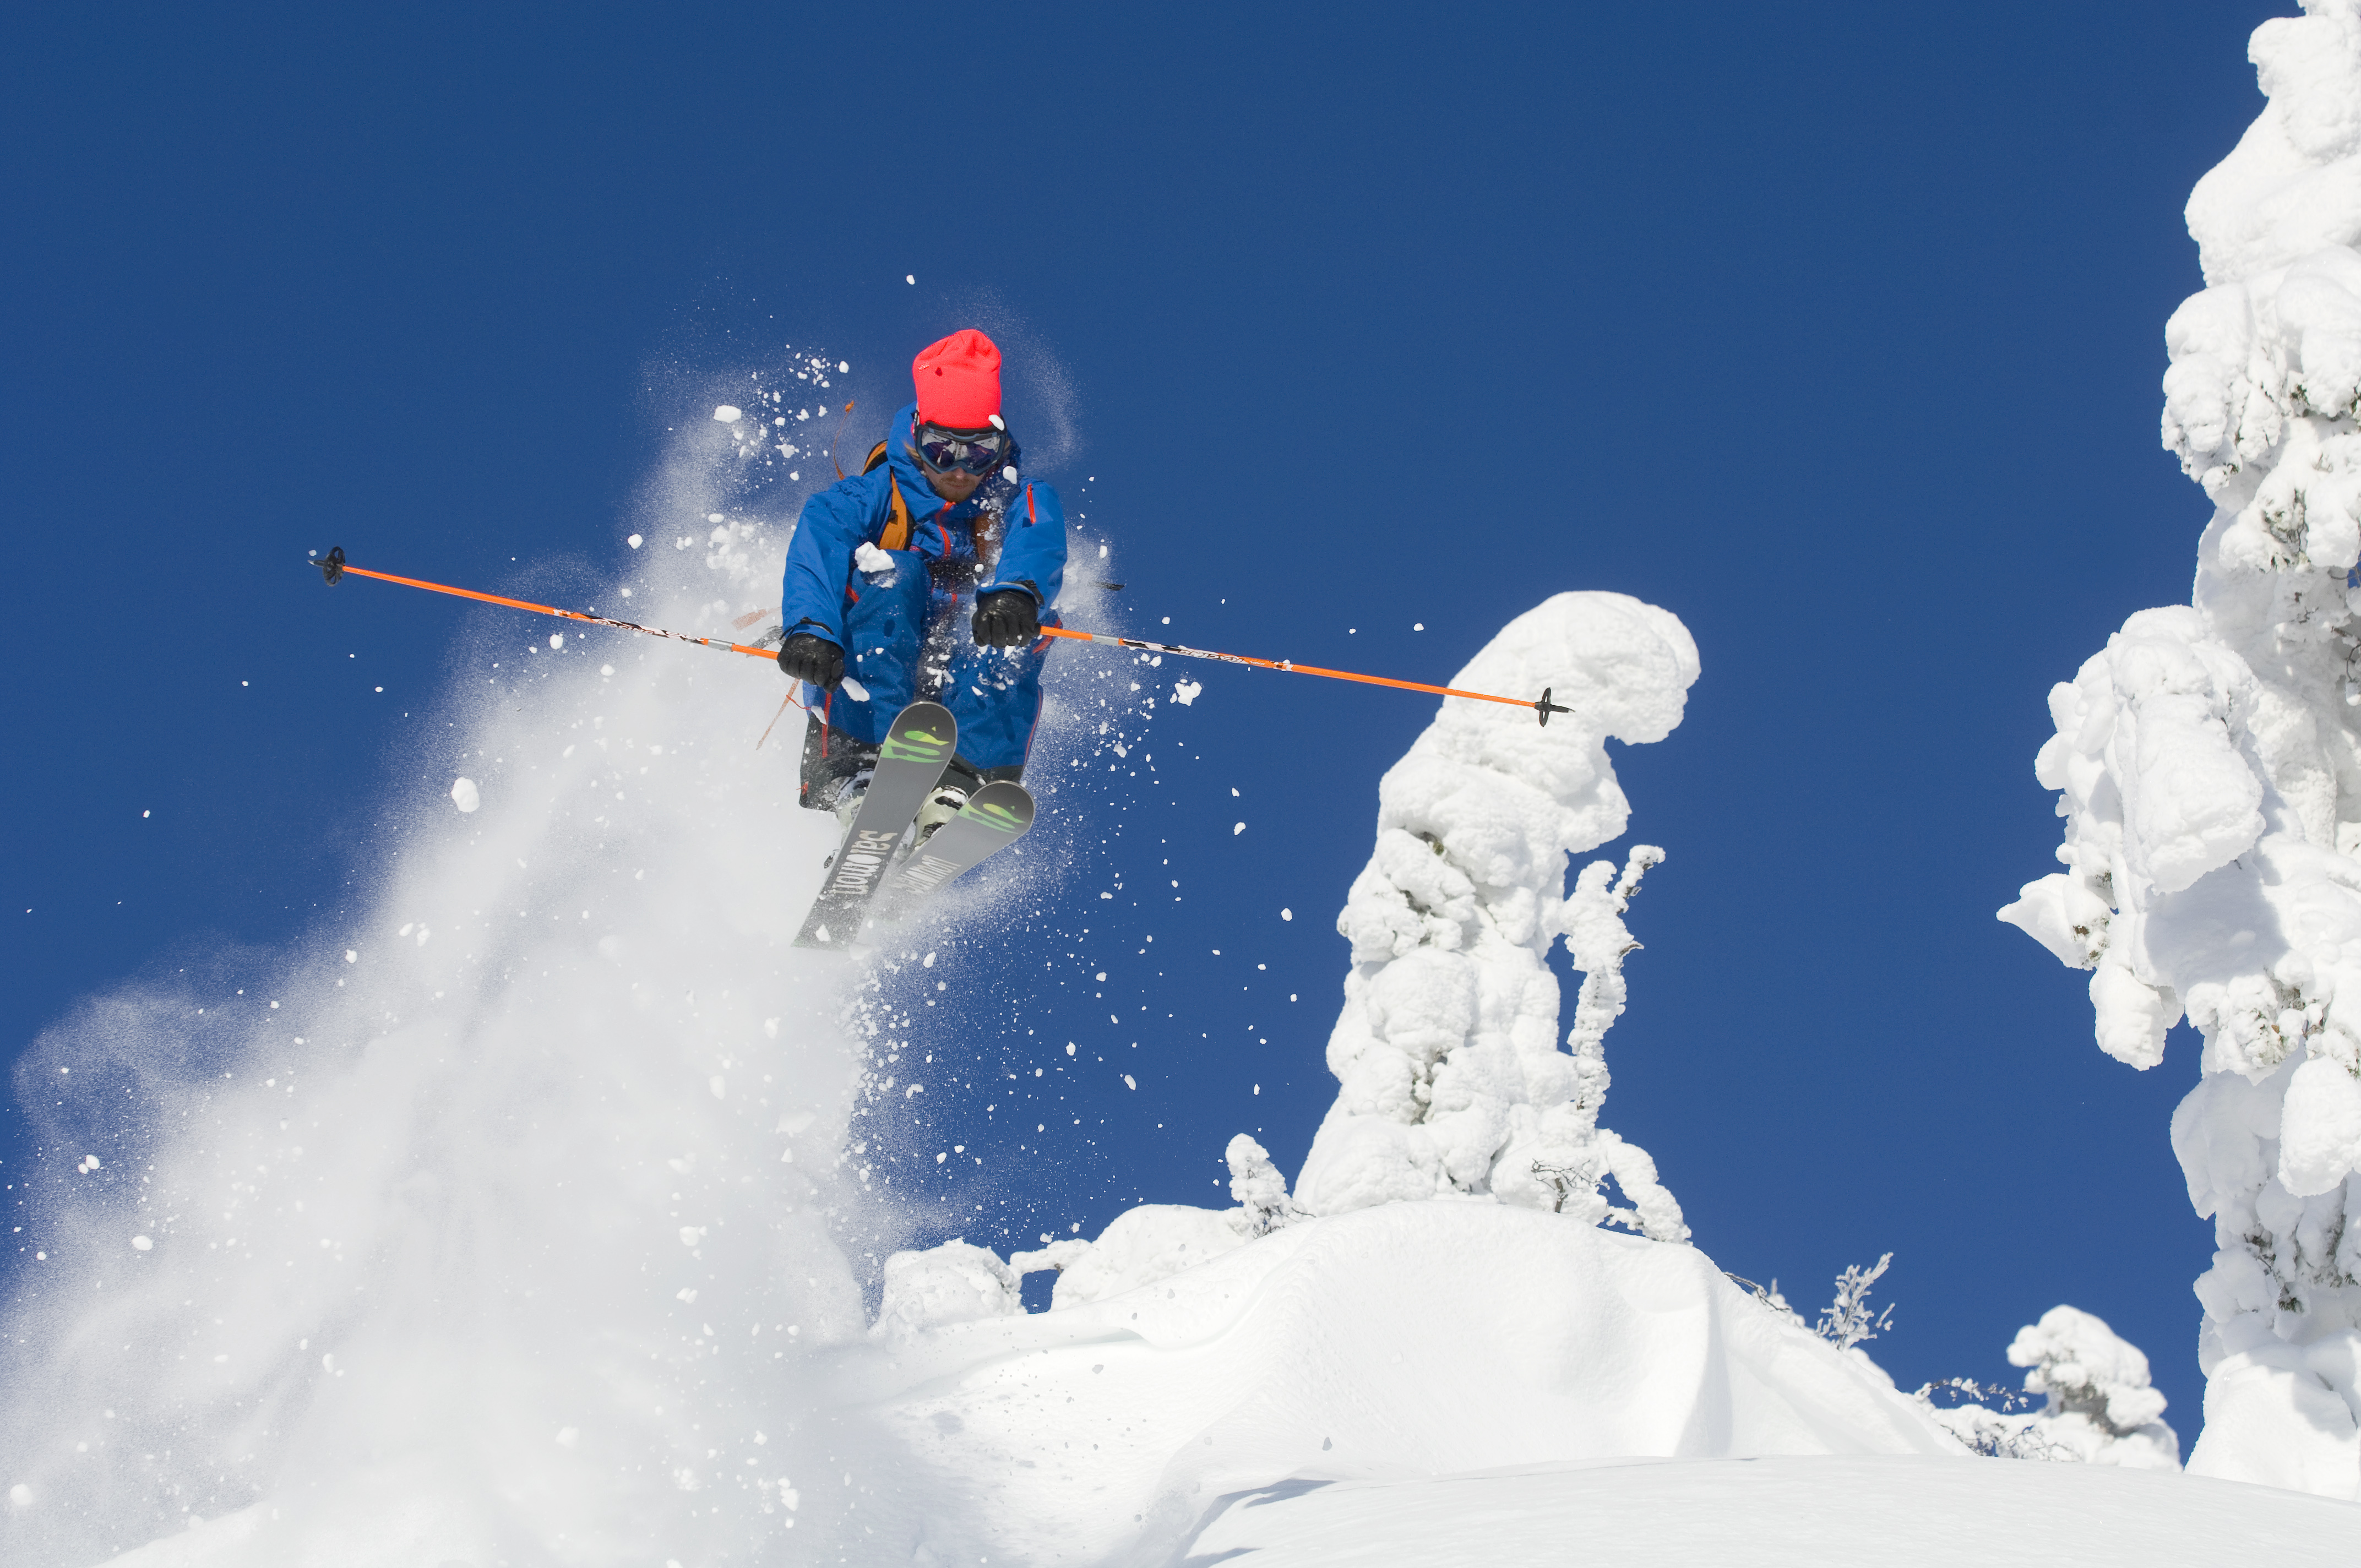 Skiing Holidays In Finland Introducing The Best Finnish Ski Resorts Discovering Finland